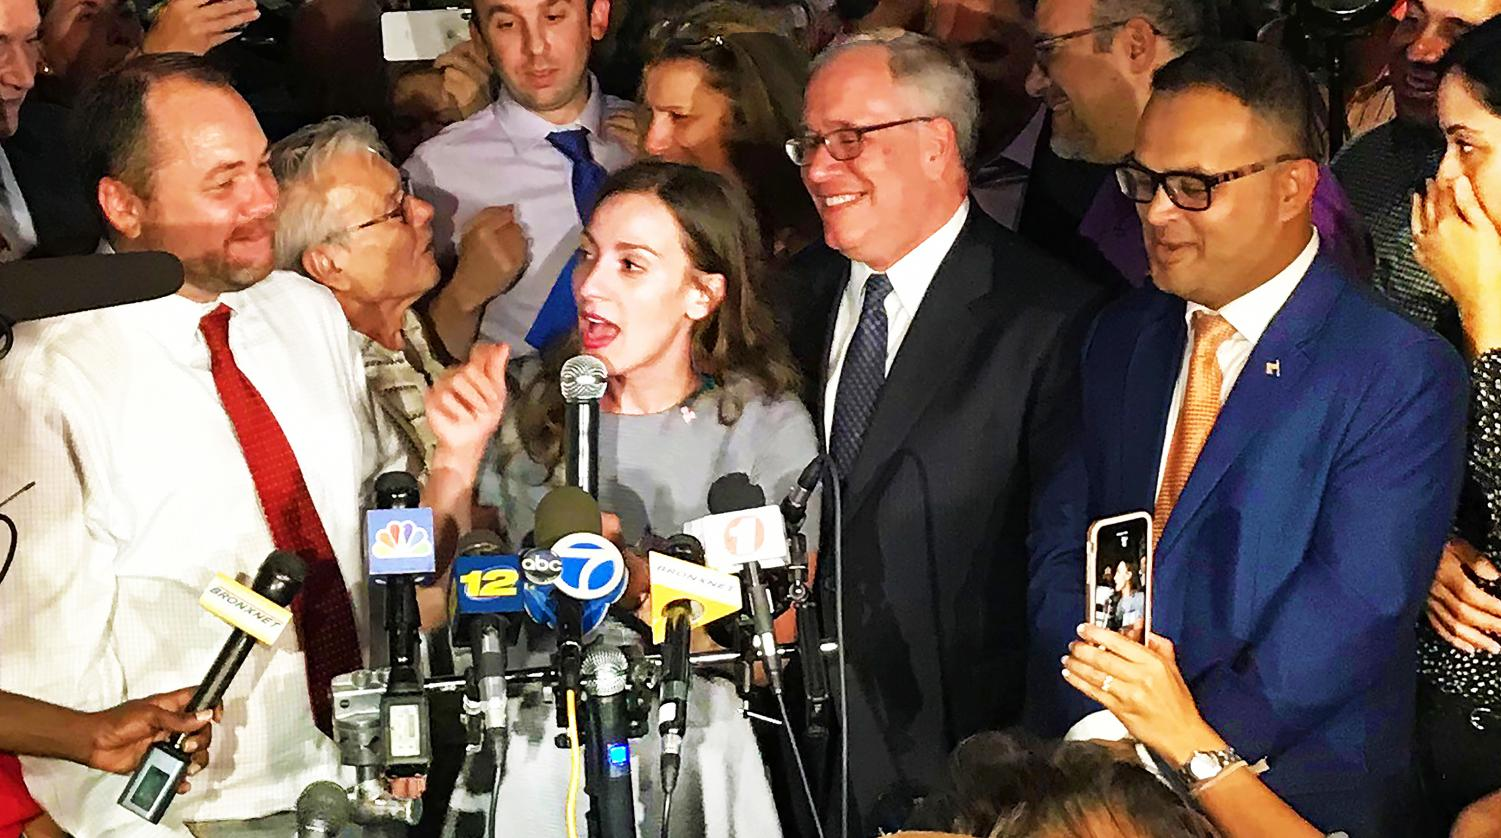 Alessandra Biaggi (c) responds to reporters following her win as the Democratic nominee for New York Senate in District 34.